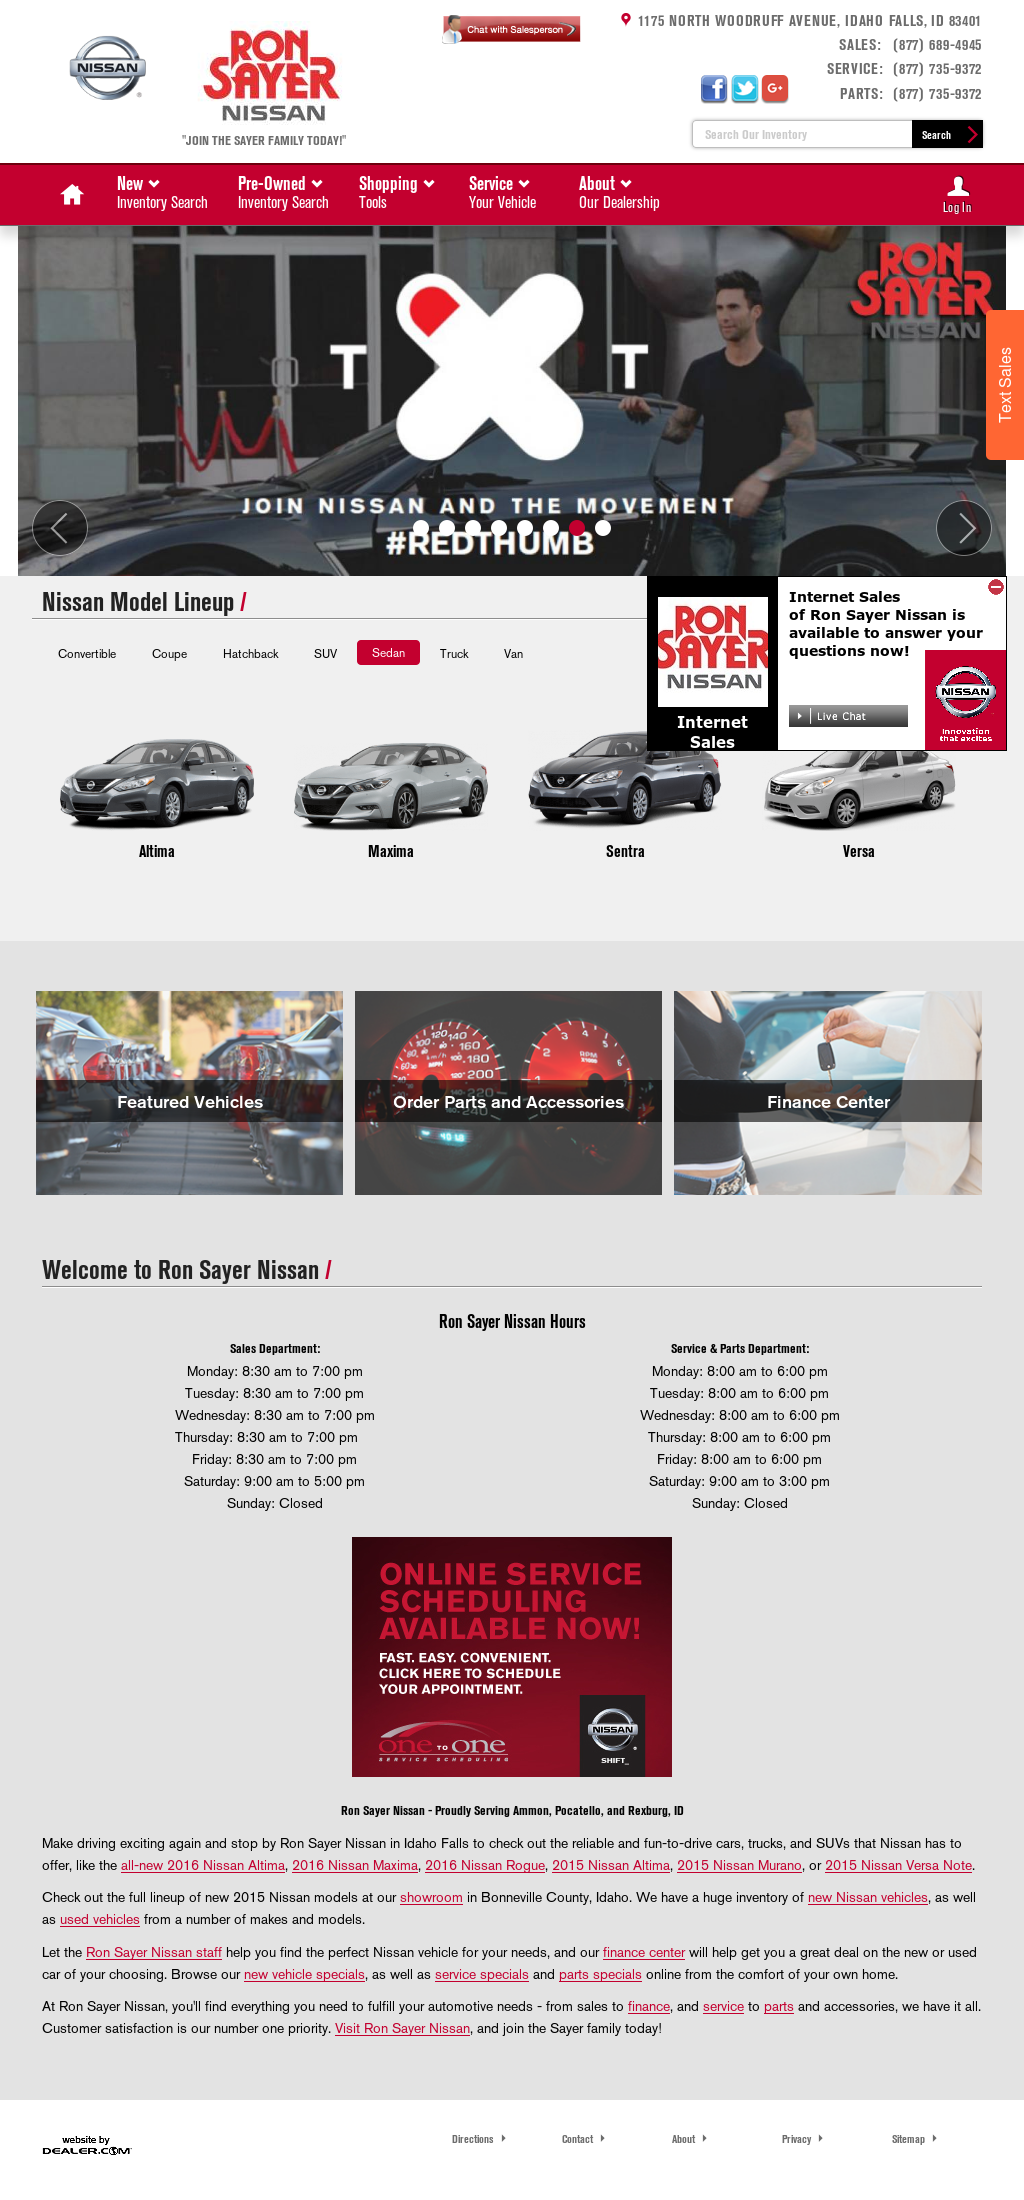 Ron Sayer Nissan >> Ron Sayer Nissan Competitors Revenue And Employees Owler